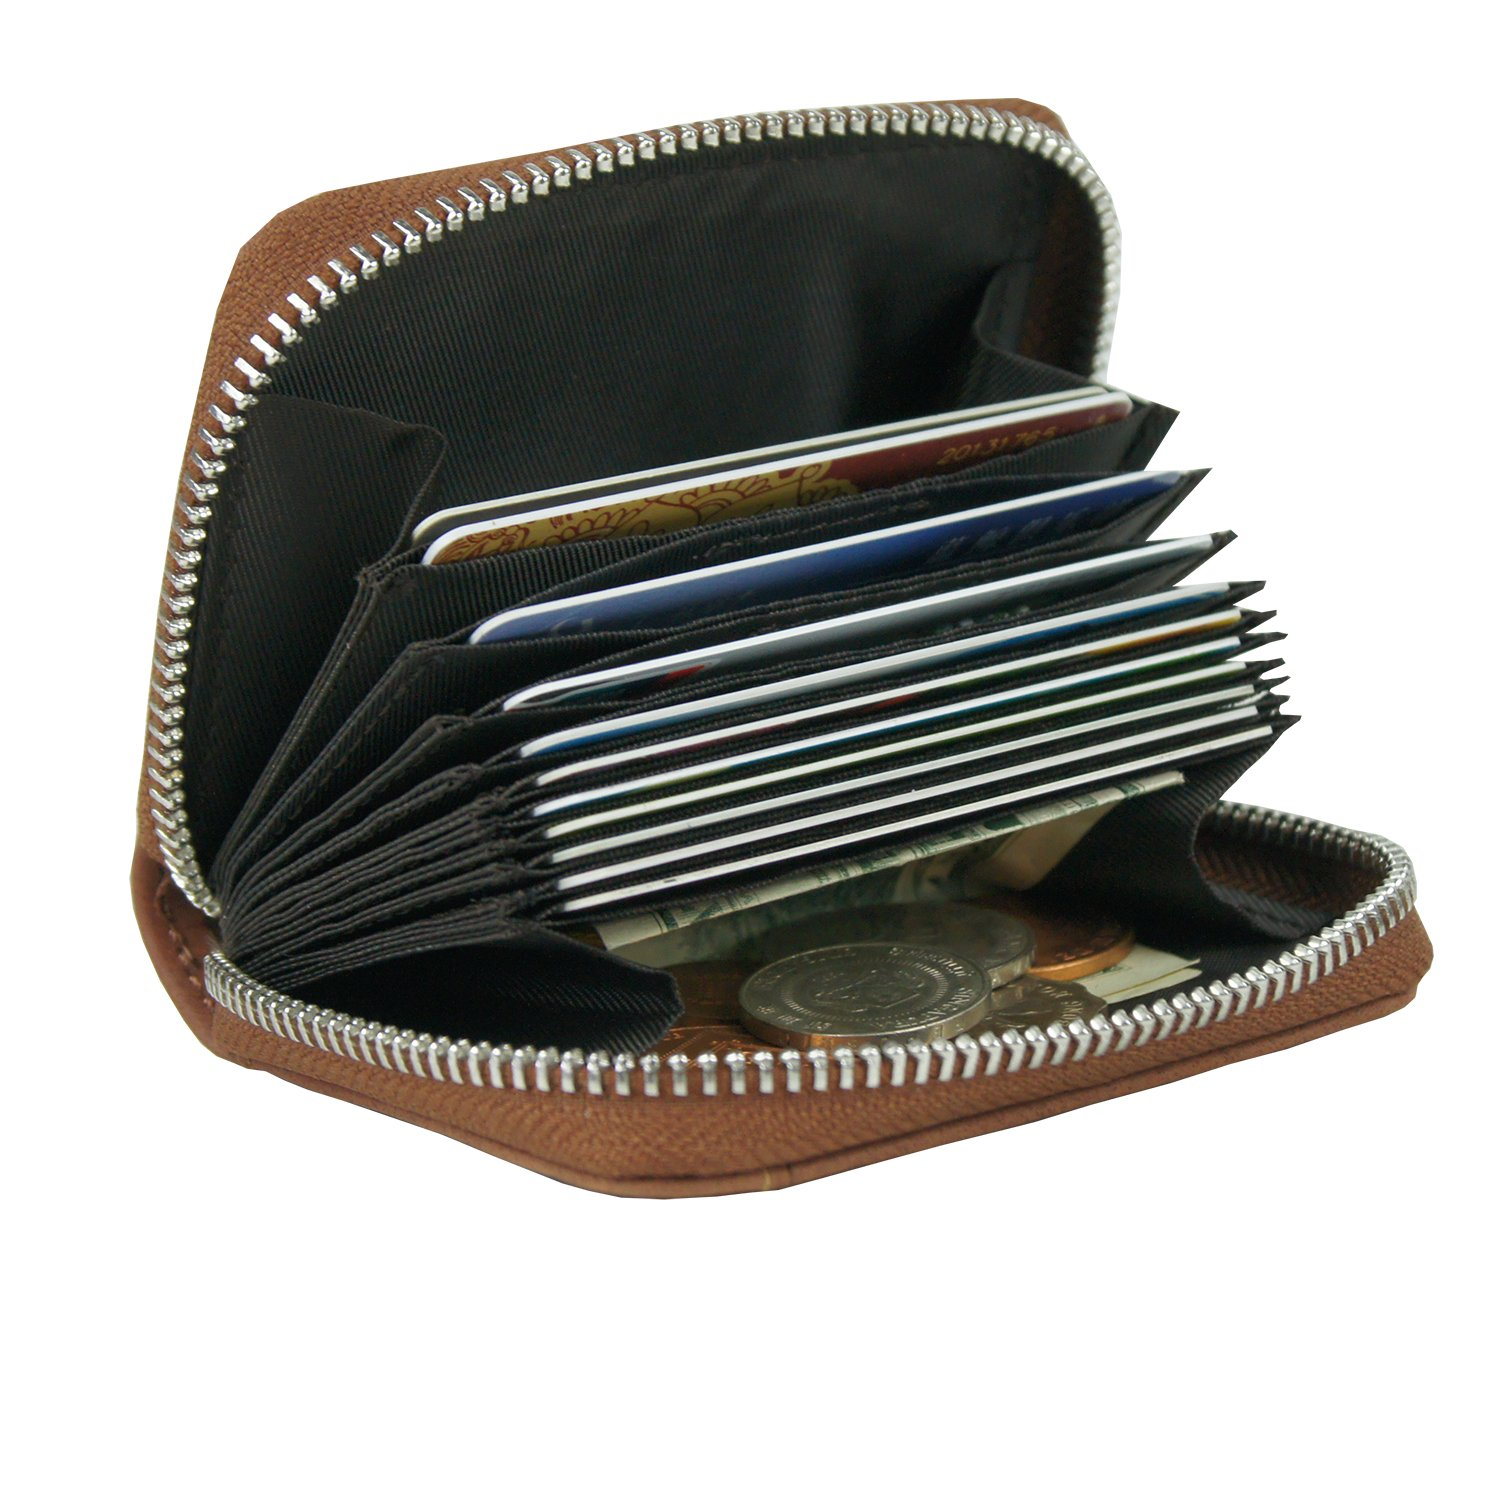 RFID Blocking Coin Pouch Purse Credit Card Case Holder Wallet With Zipper (Light Brown) Yiwu Kuke Leather Co. Ltd